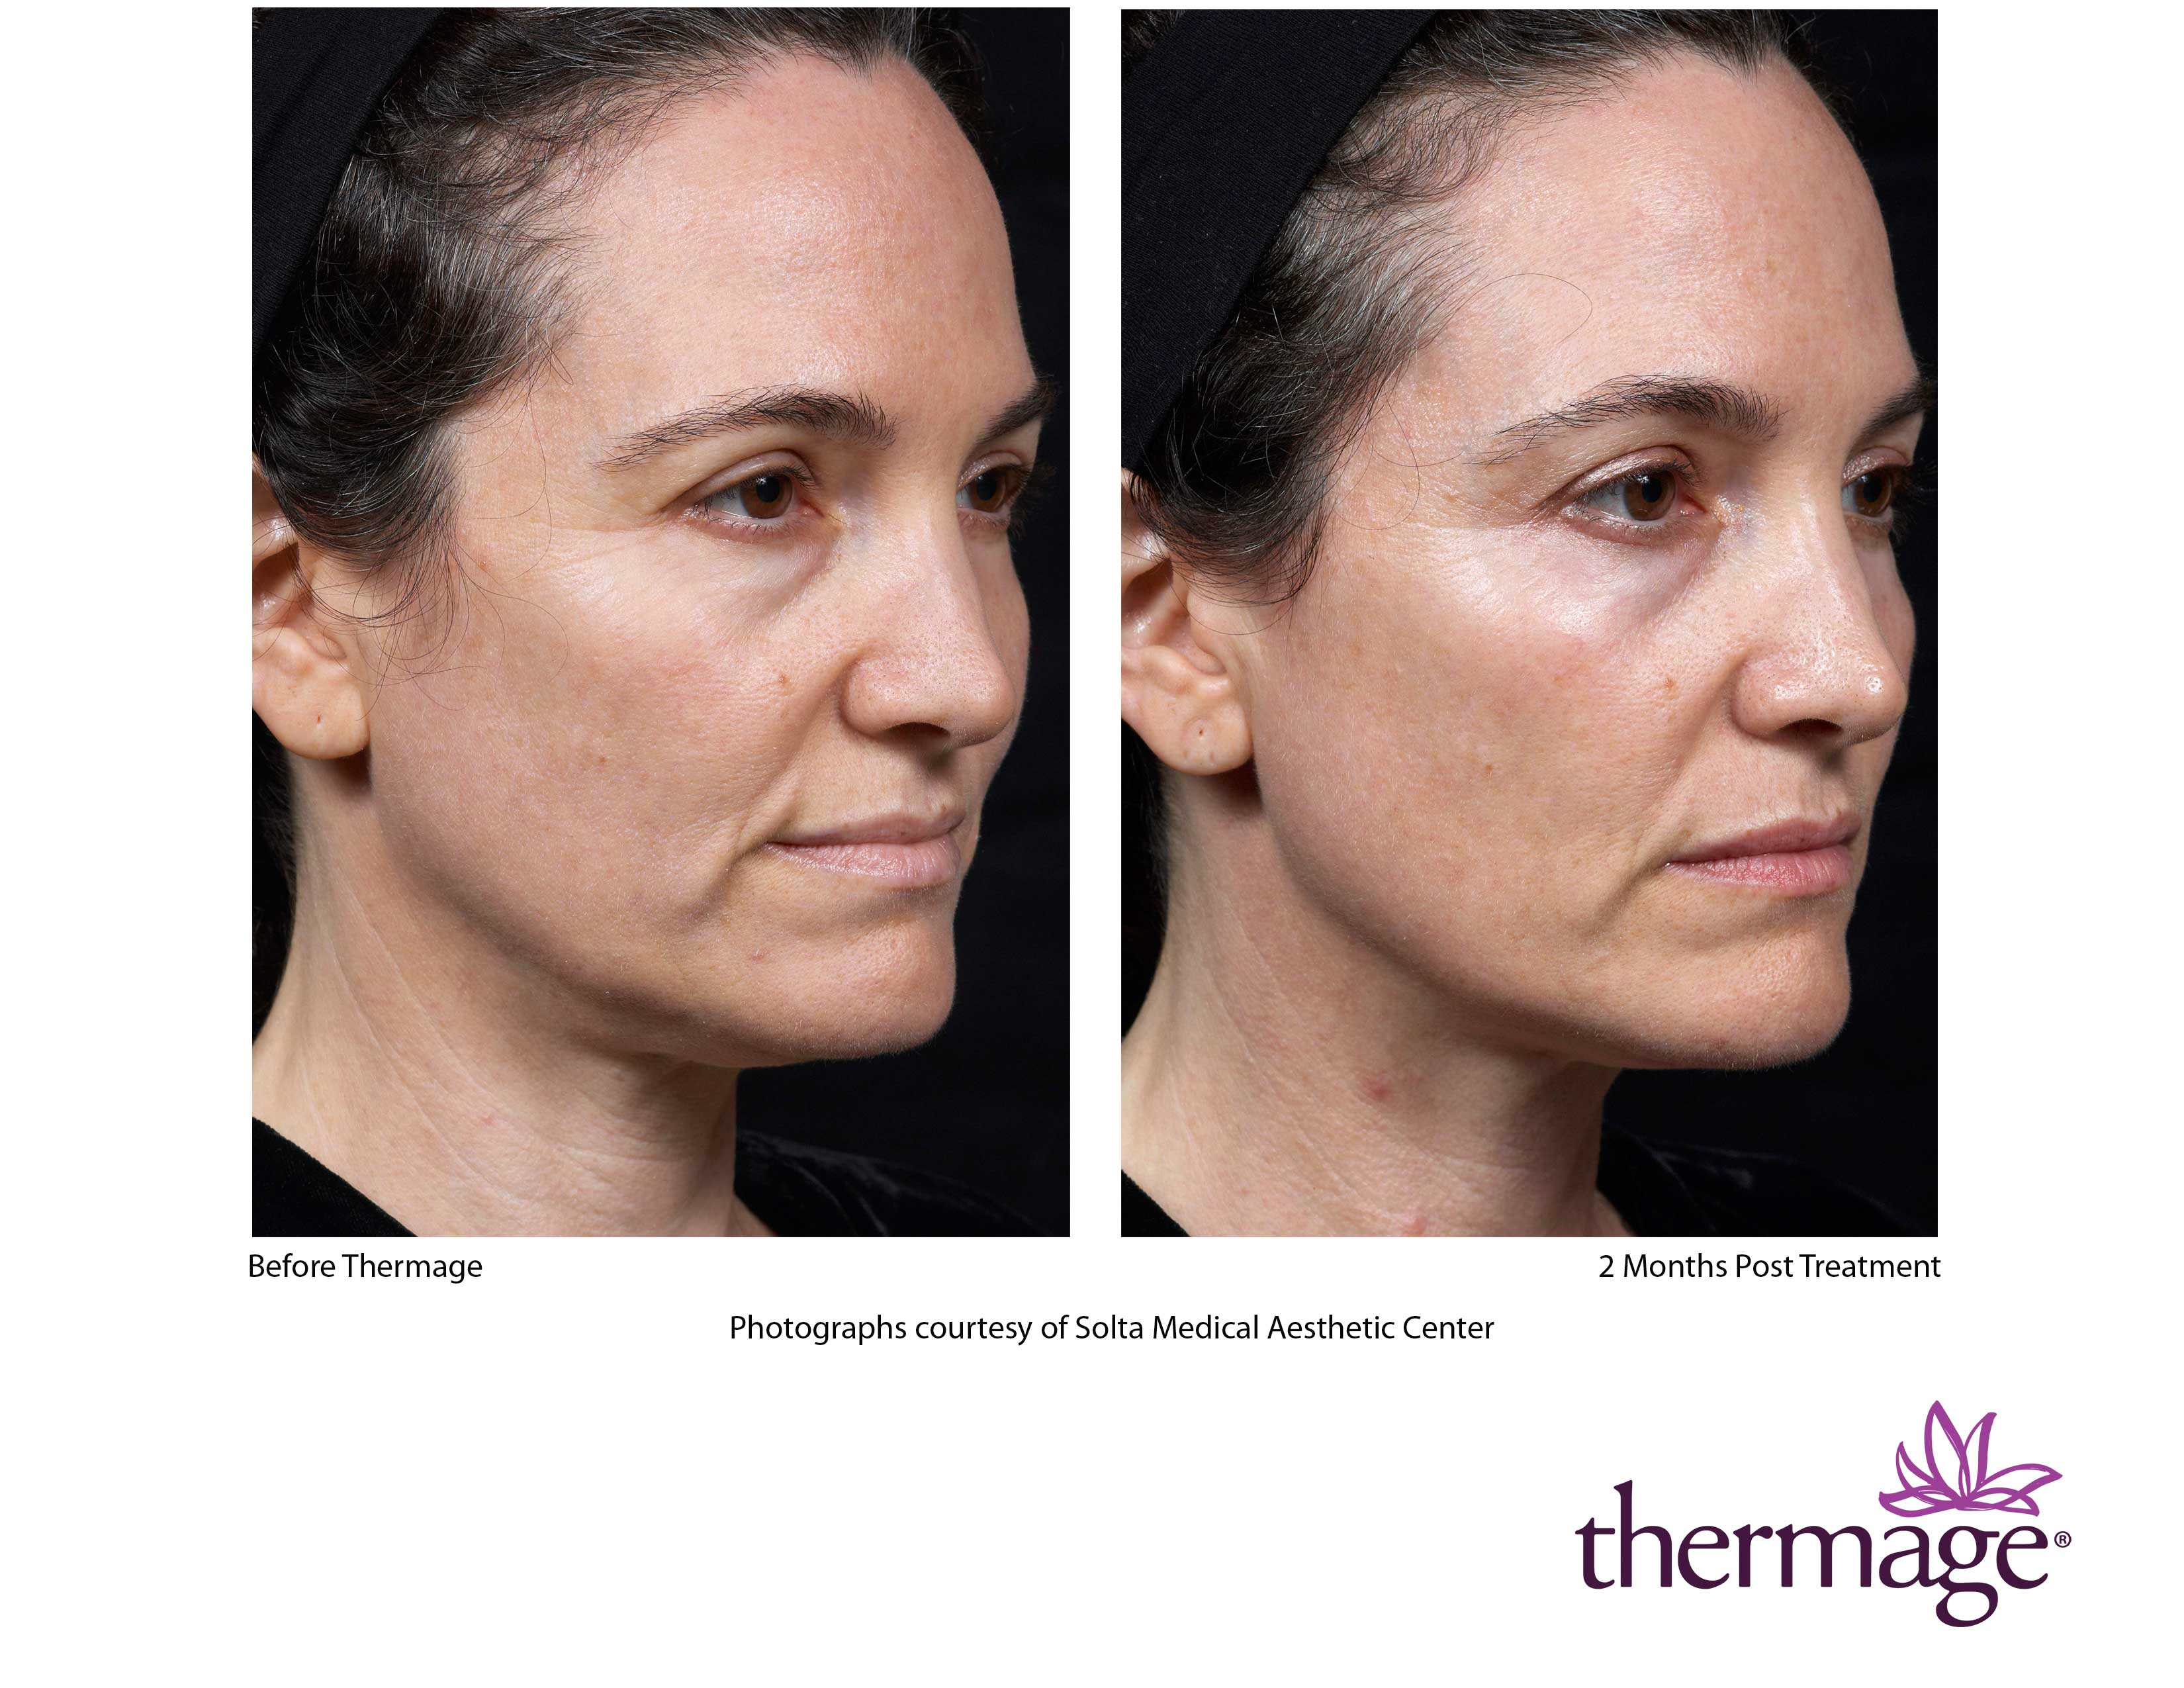 Thermage skin tightening, stretch marks, New York City